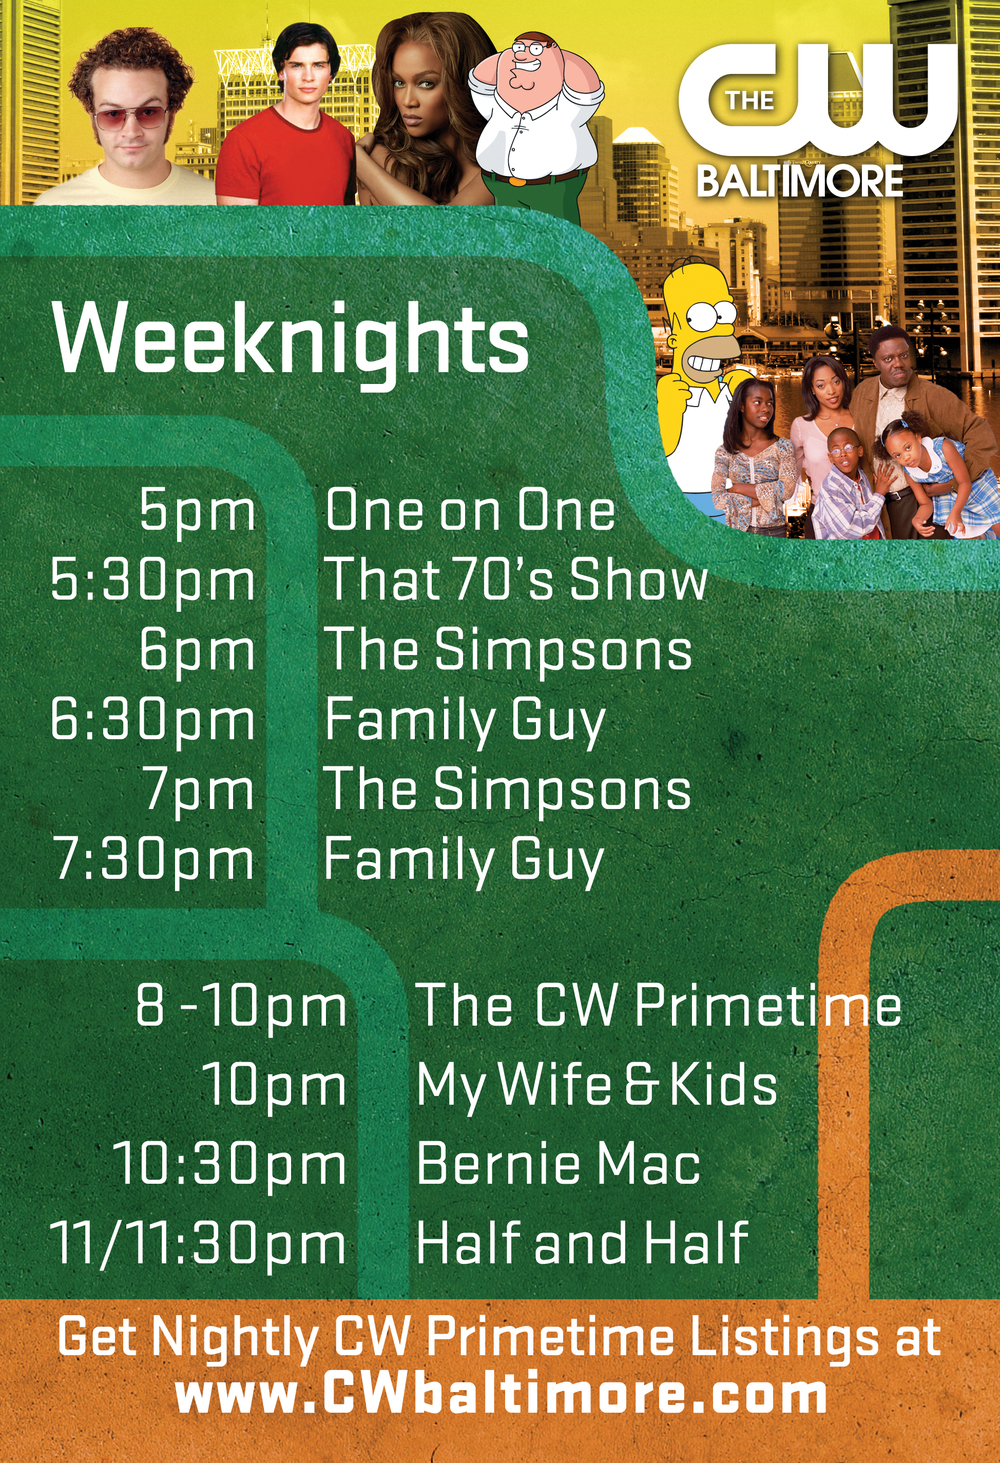 CW viewing schedule insert